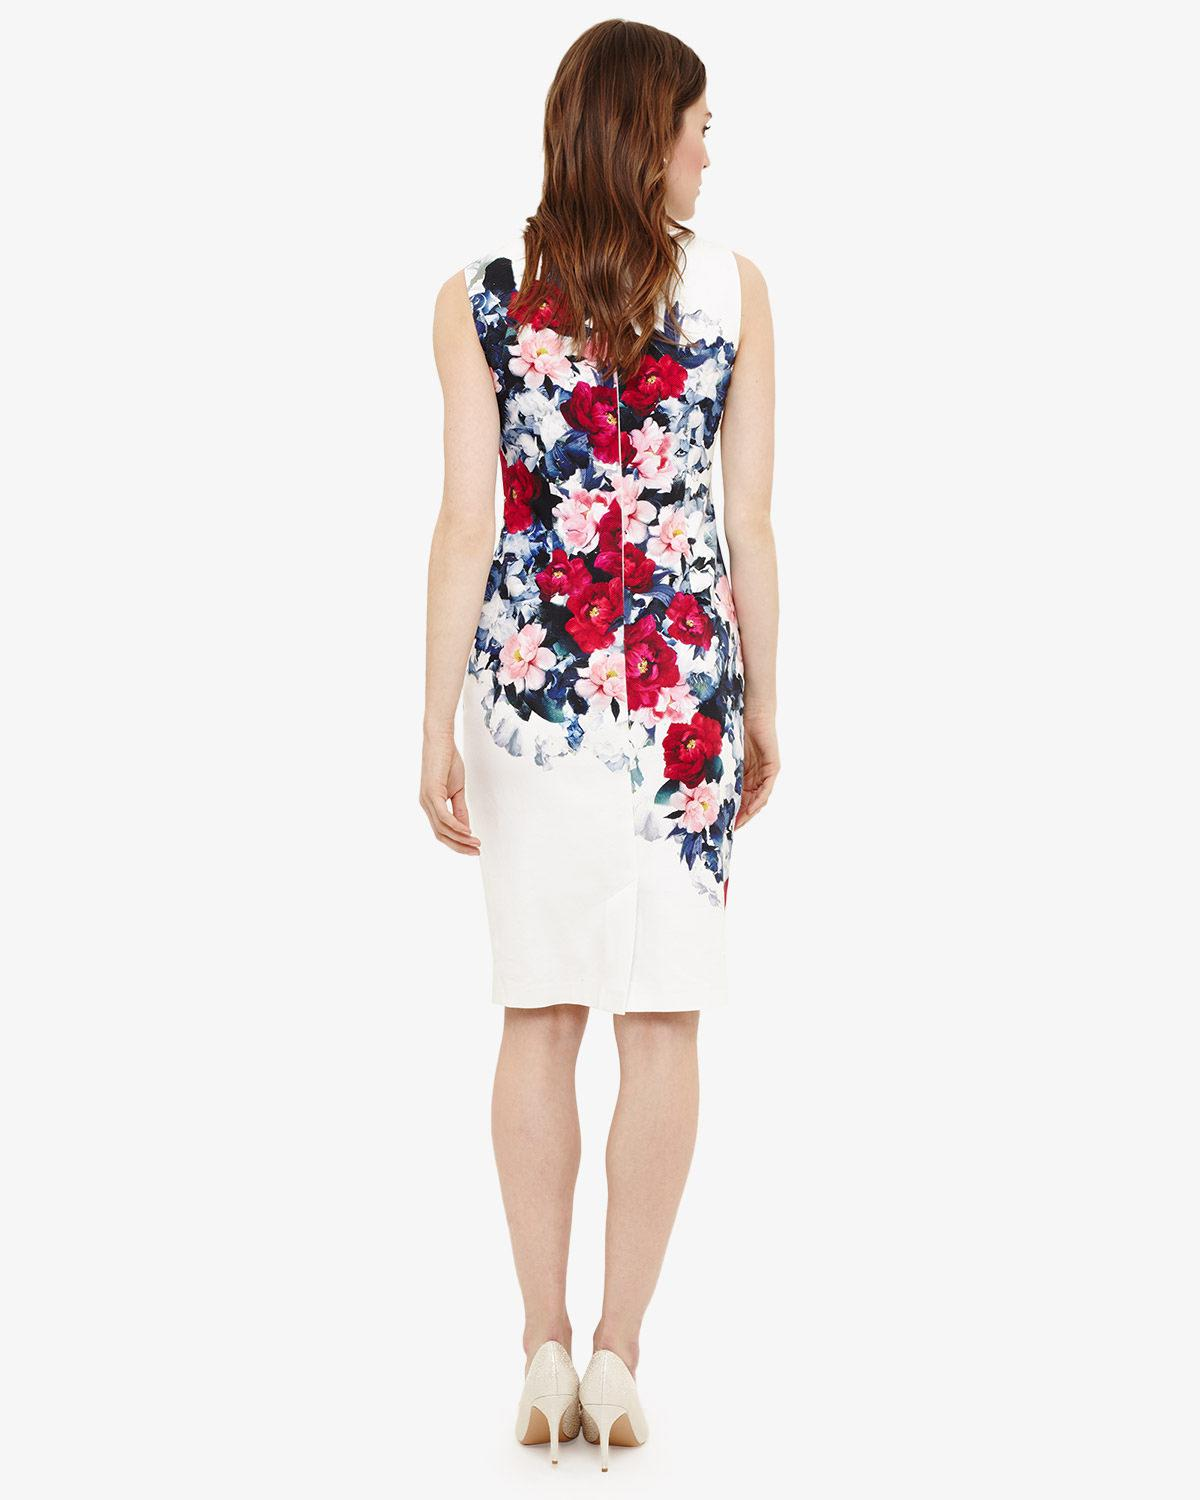 Lyst - Phase Eight Cassia Floral Printed Dress in White 854fd3c66